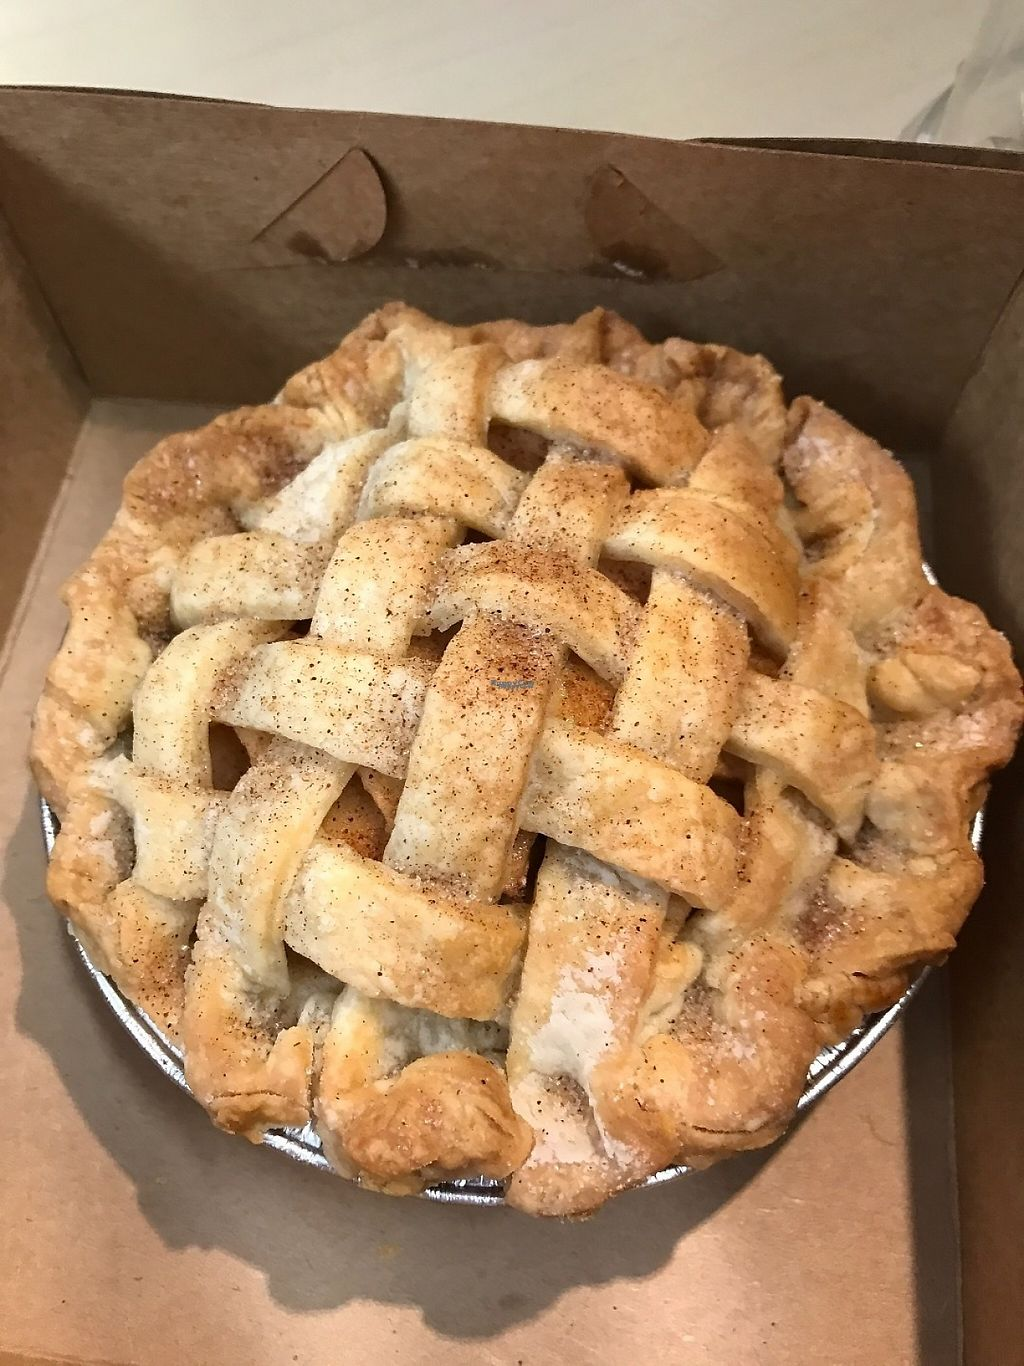 "Photo of Treehouse Bakery  by <a href=""/members/profile/Tigra220"">Tigra220</a> <br/>mini apple pie <br/> March 10, 2017  - <a href='/contact/abuse/image/33977/234767'>Report</a>"